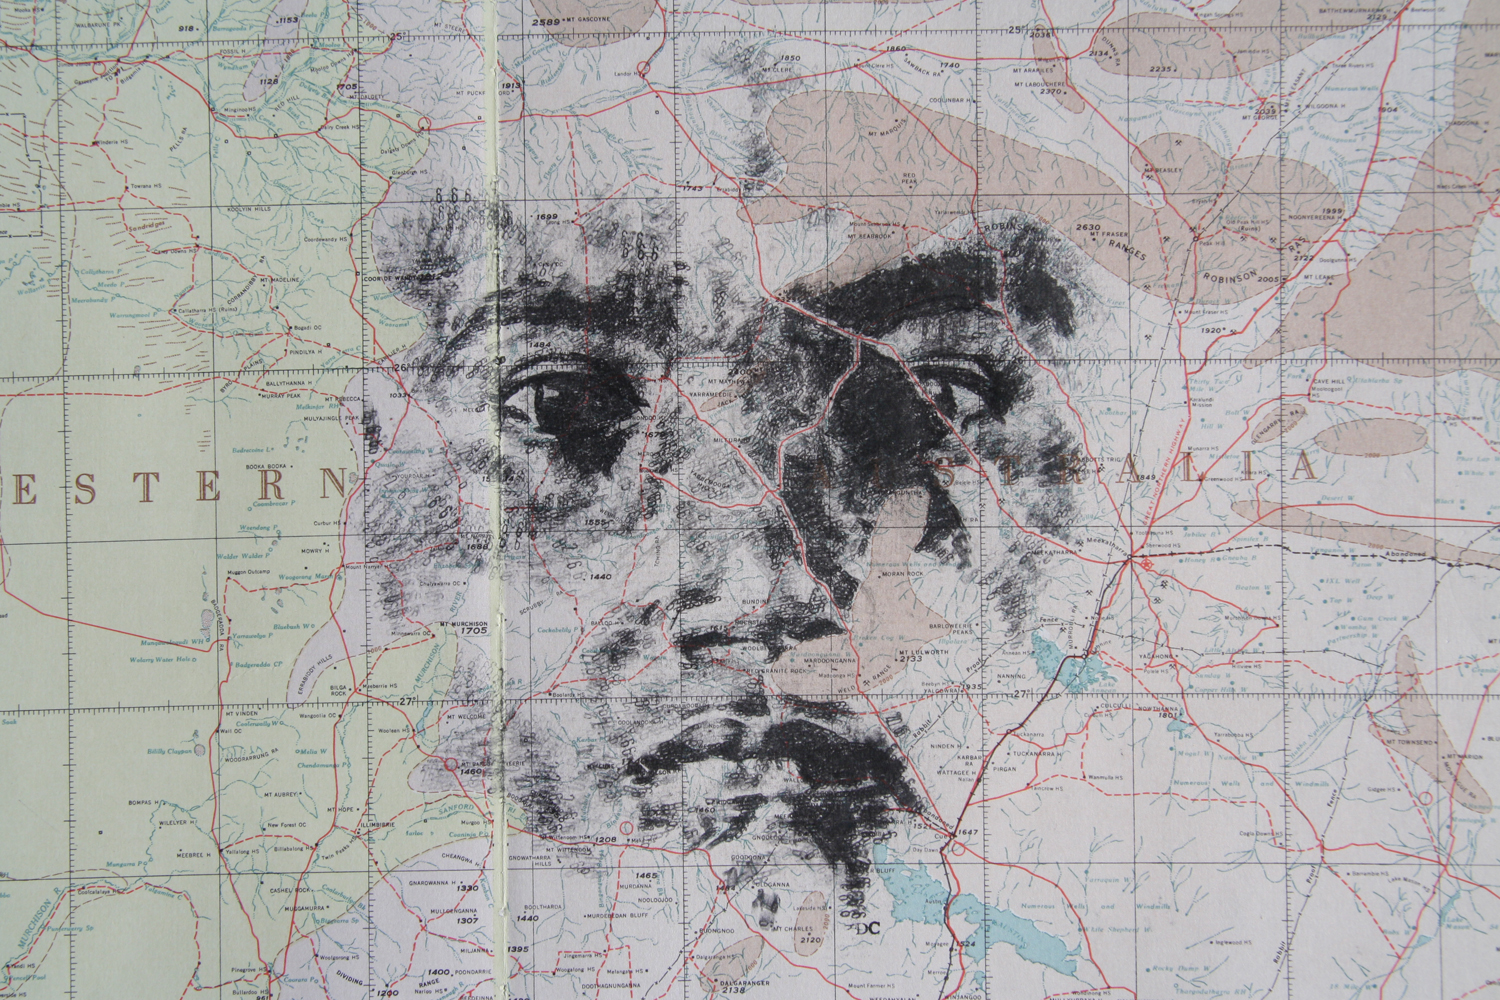 'Murchison 26', 2013, (SOLD), date stamp and ink on map of Western Australia, 52 x 38 cm